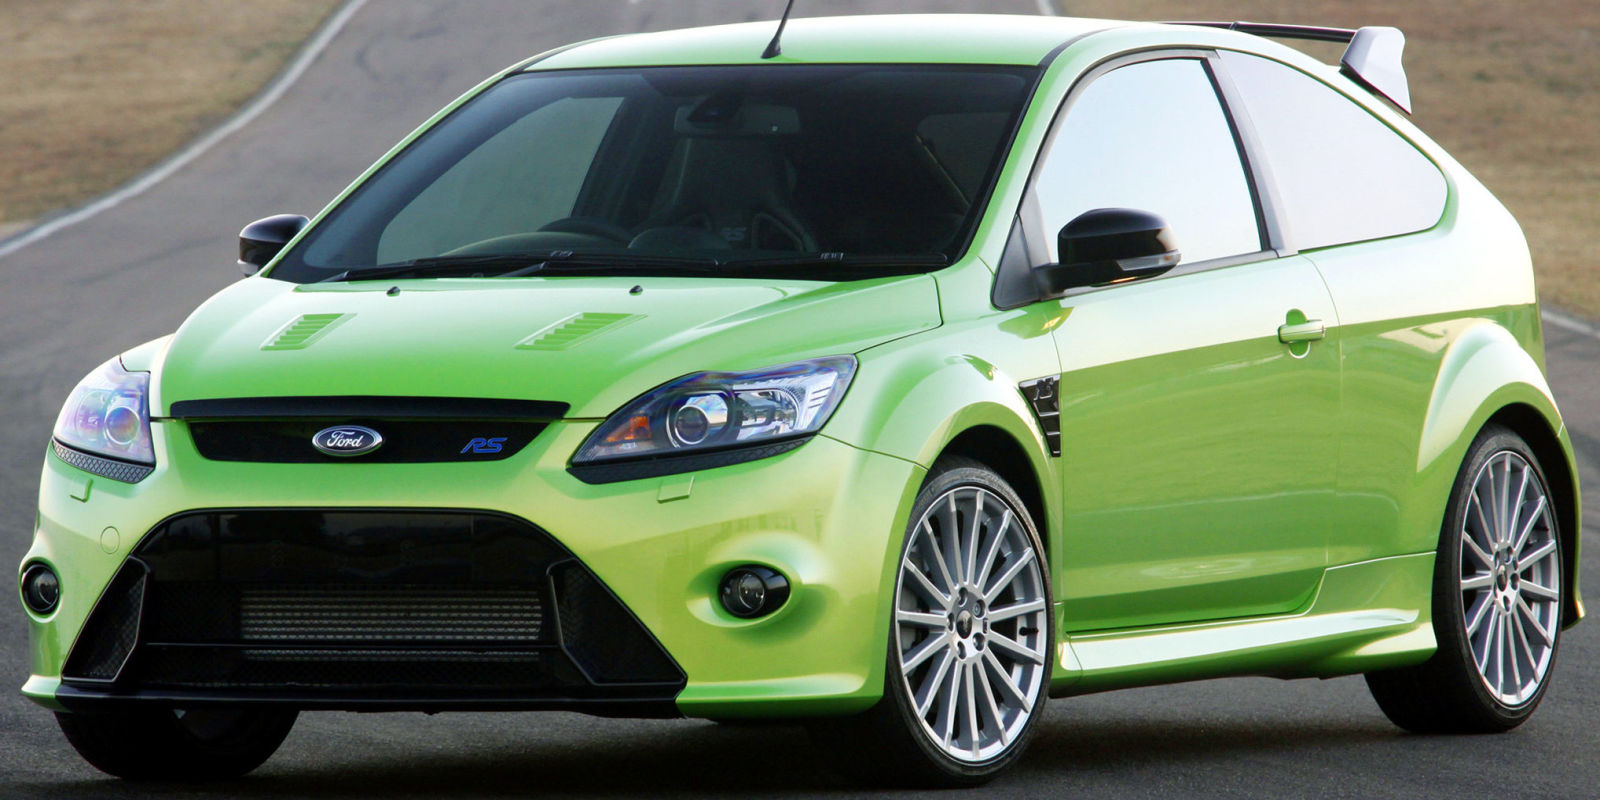 F 150 Tremor >> 2017 Ford Focus RS new | Car Photos Catalog 2019